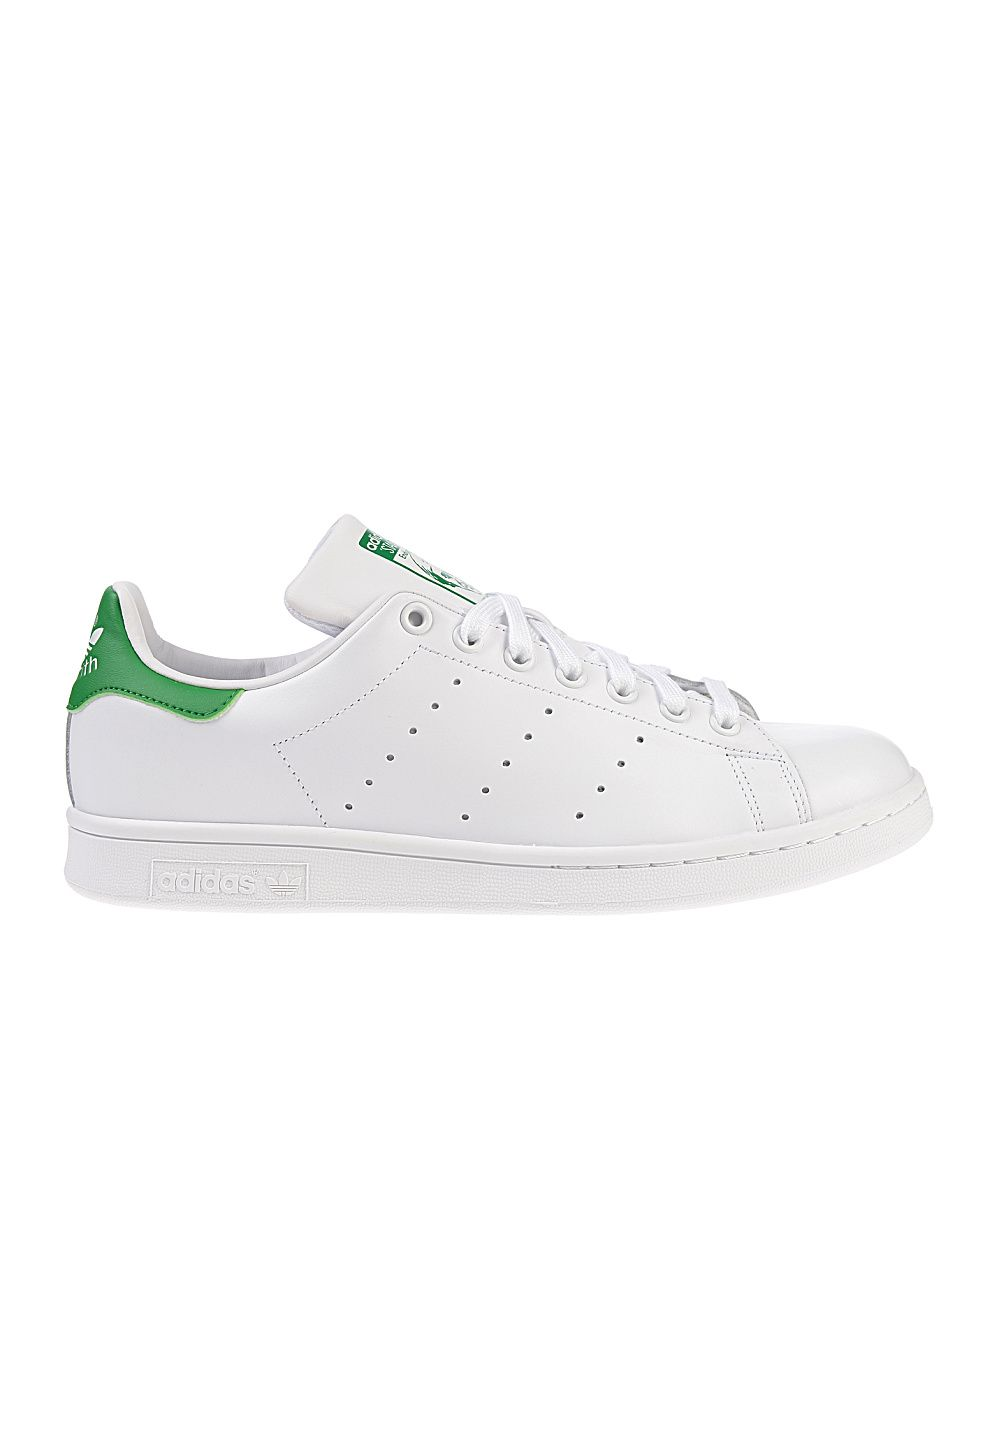 9b1076a1aaac Adidas Stan Smith - Baskets pour Homme - Blanc Adidas Stan Smith